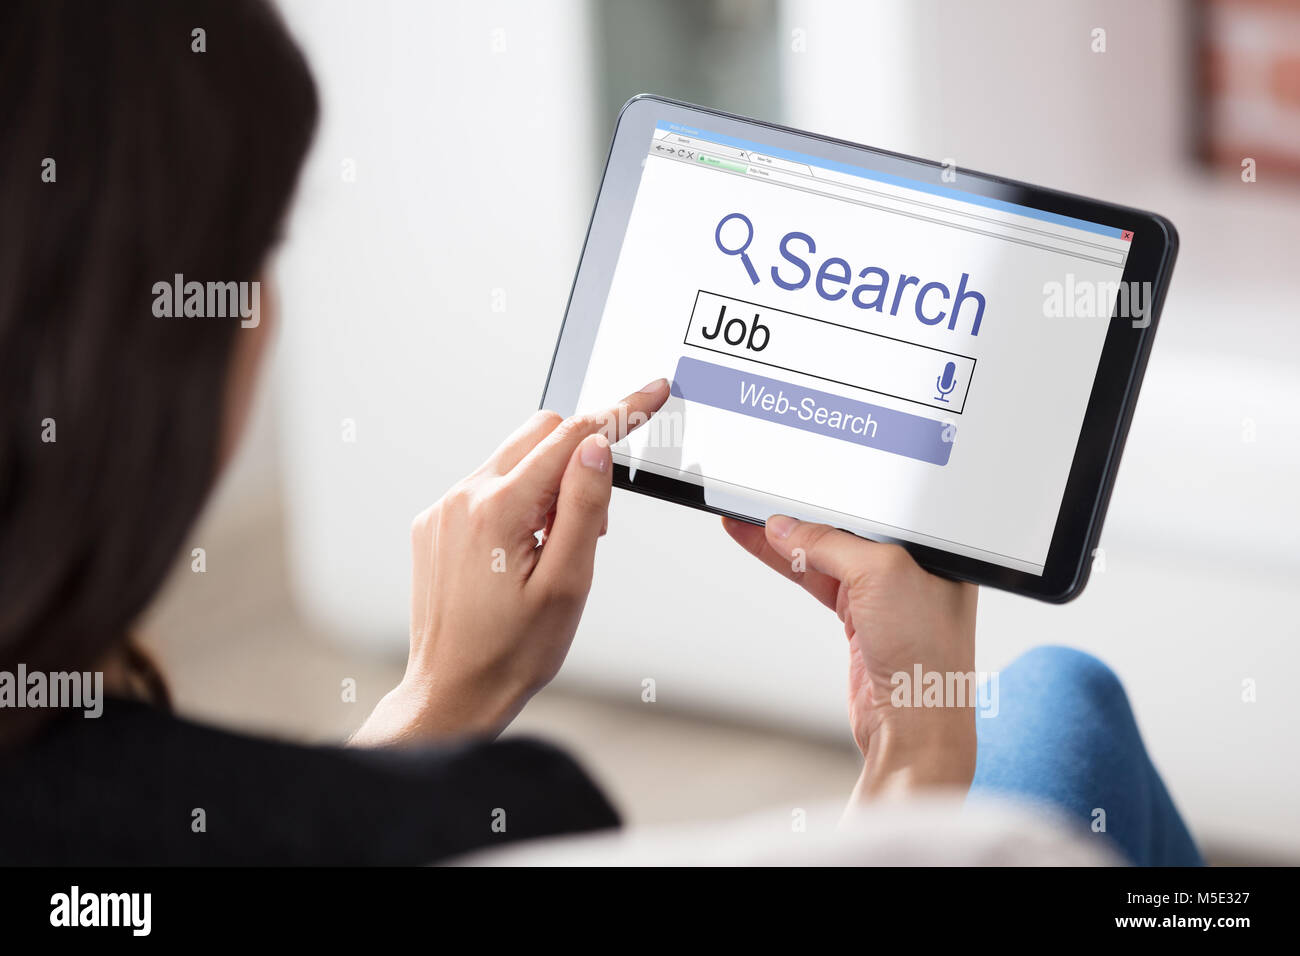 Close-up Of A Woman Searching Online Job On Digital Tablet - Stock Image